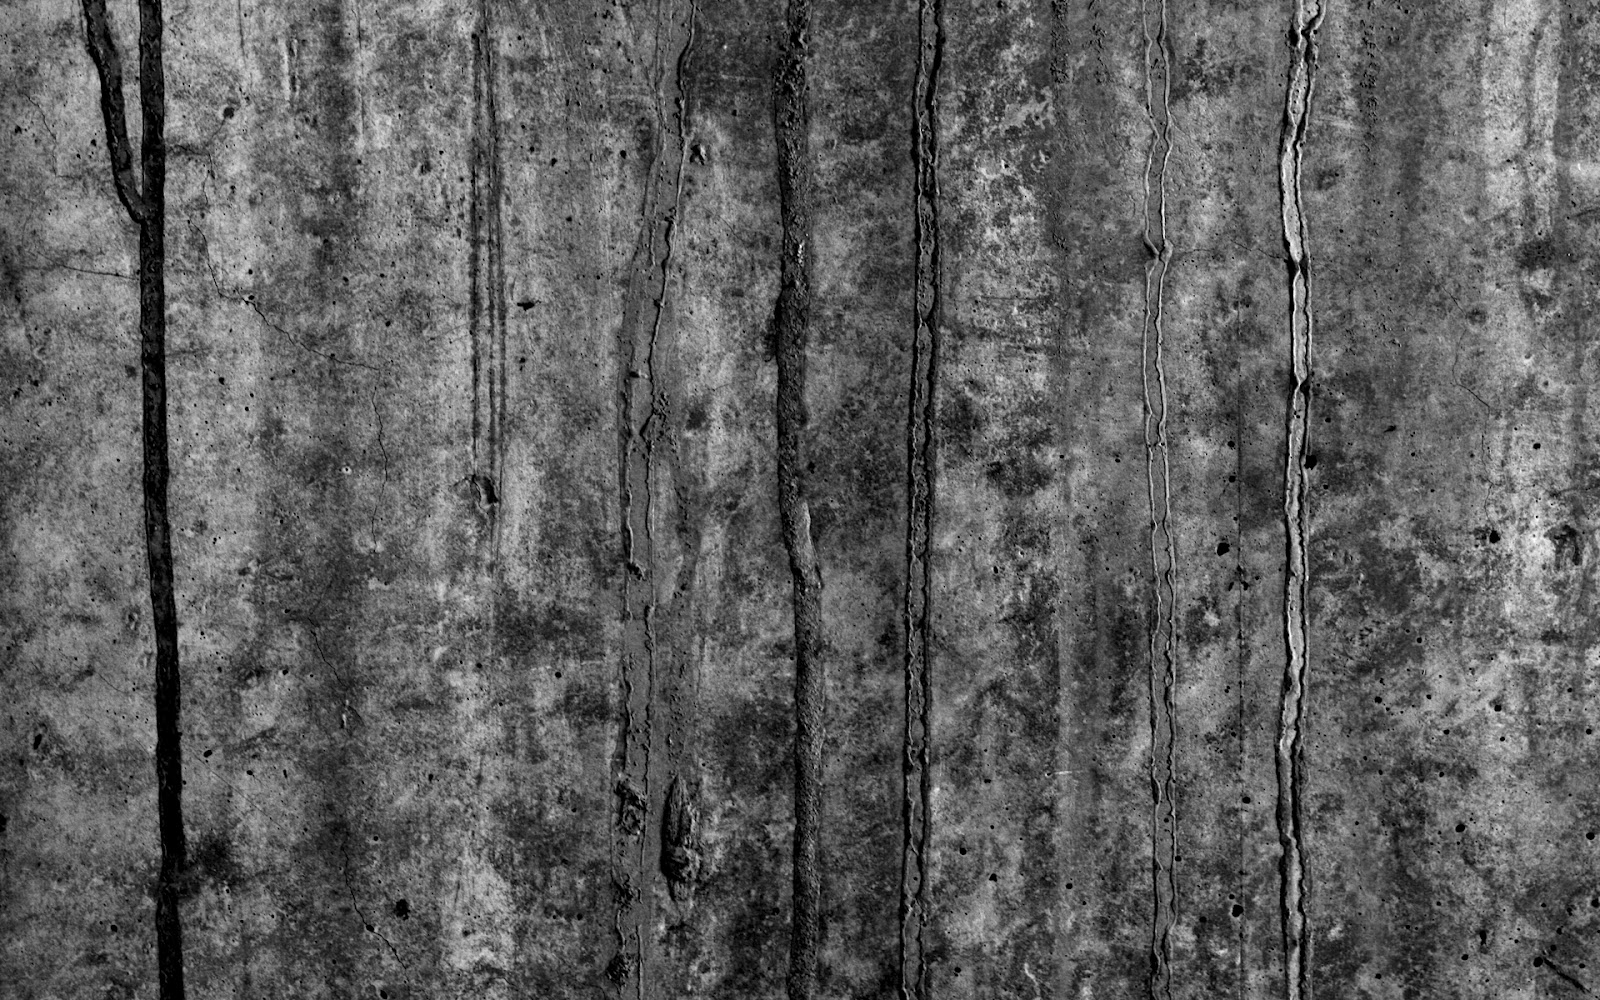 Wall Texture The Decayed Wall